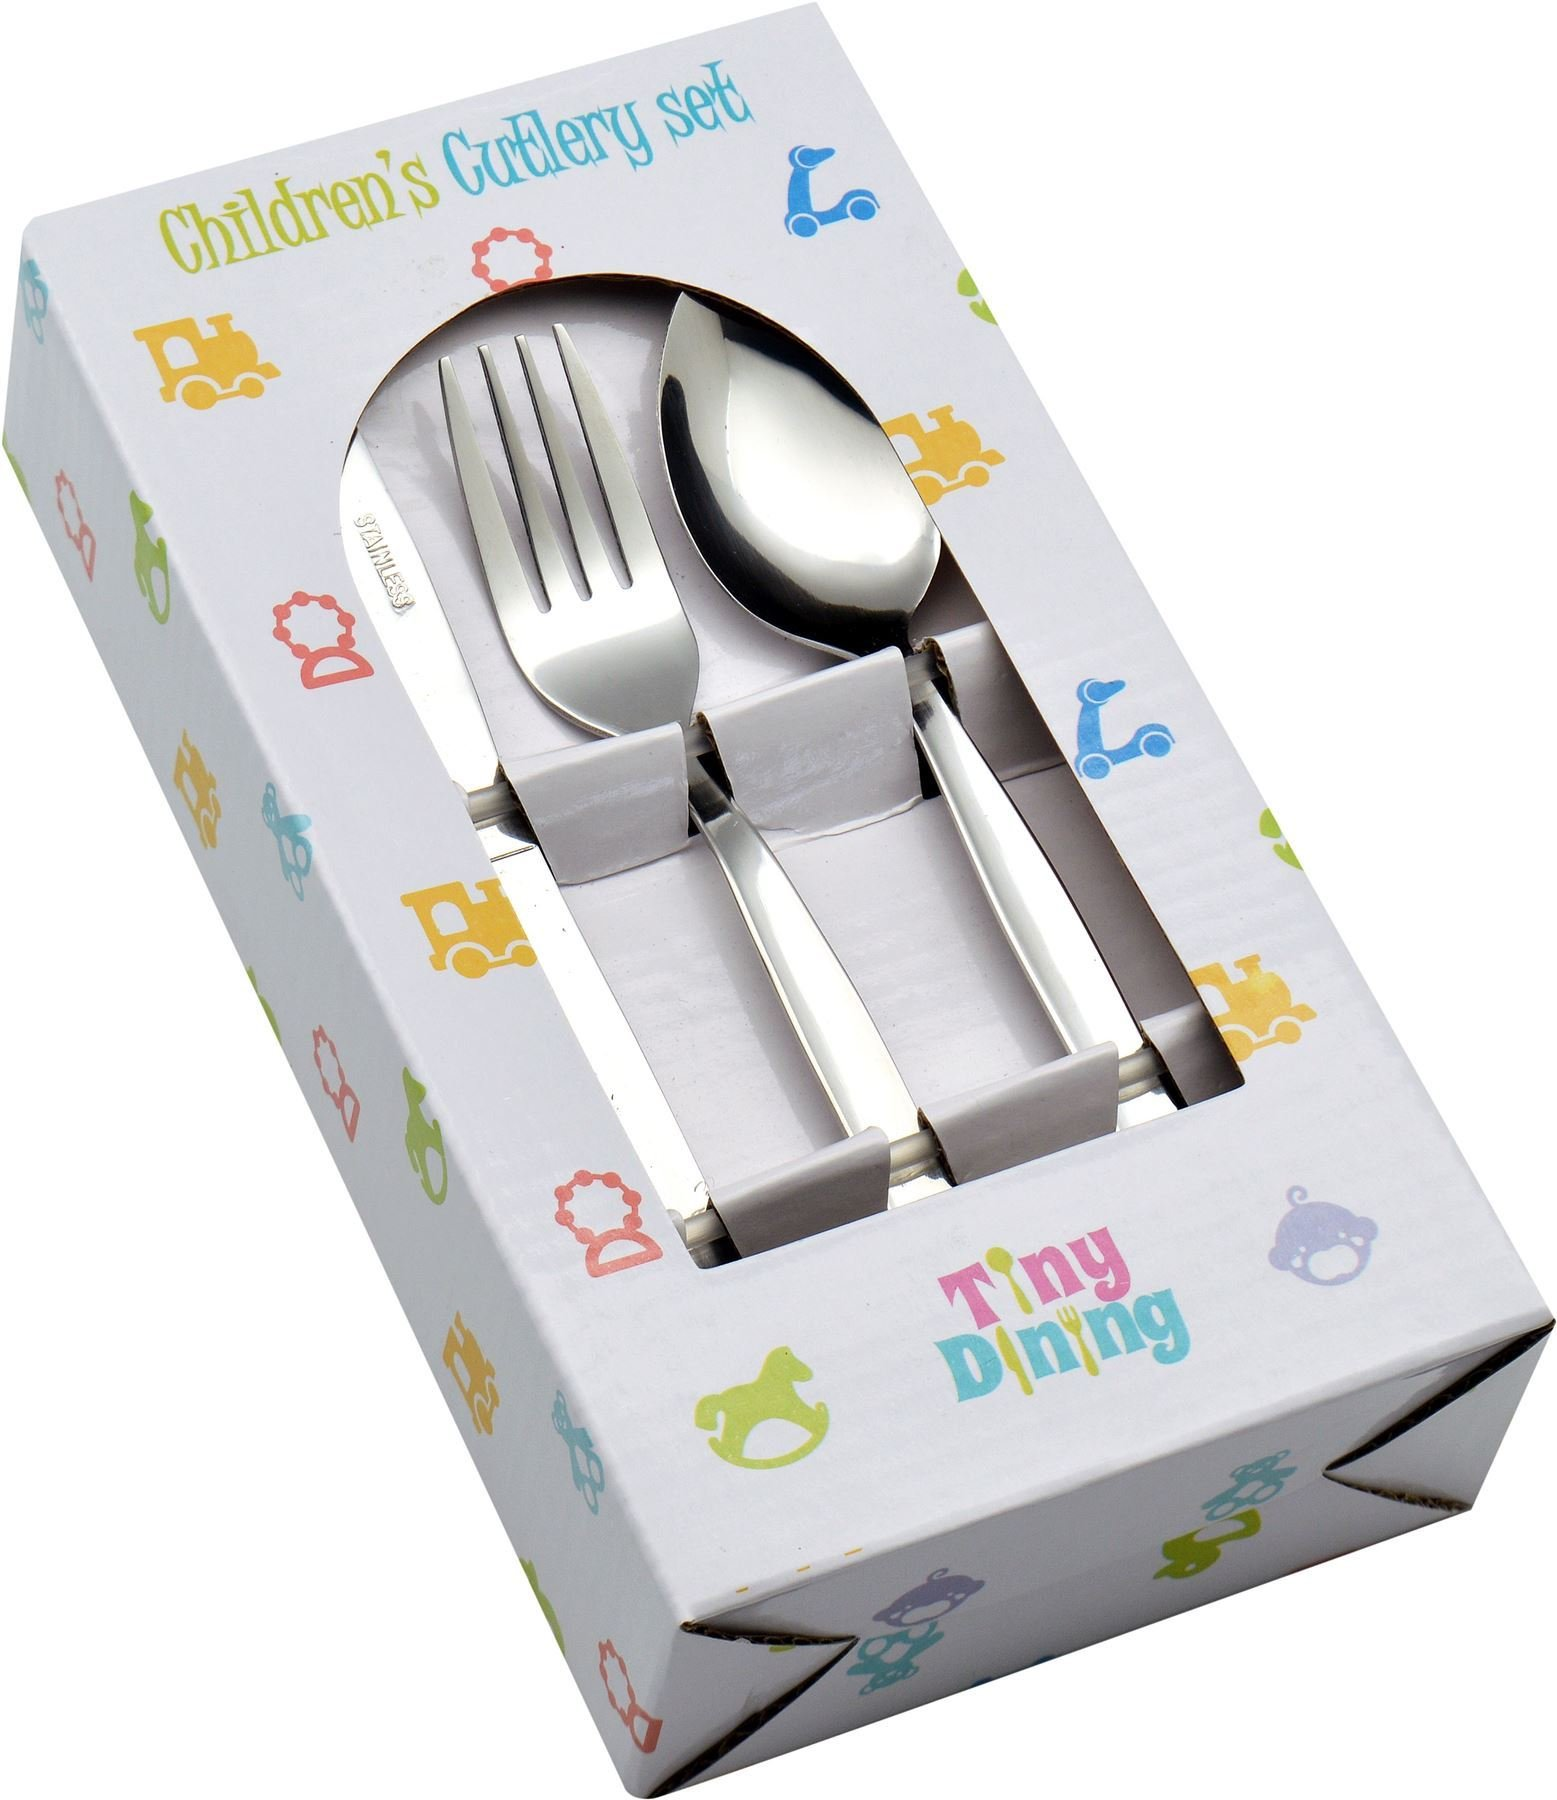 Tiny Dining 36 Piece Kids Infants Childrens Junior Cutlery Set (12 Small Table Knives, 12 Small Table Forks, 12 Small Dessert Spoons) - Ideal for home, school or lunchboxes by Tiny Dining